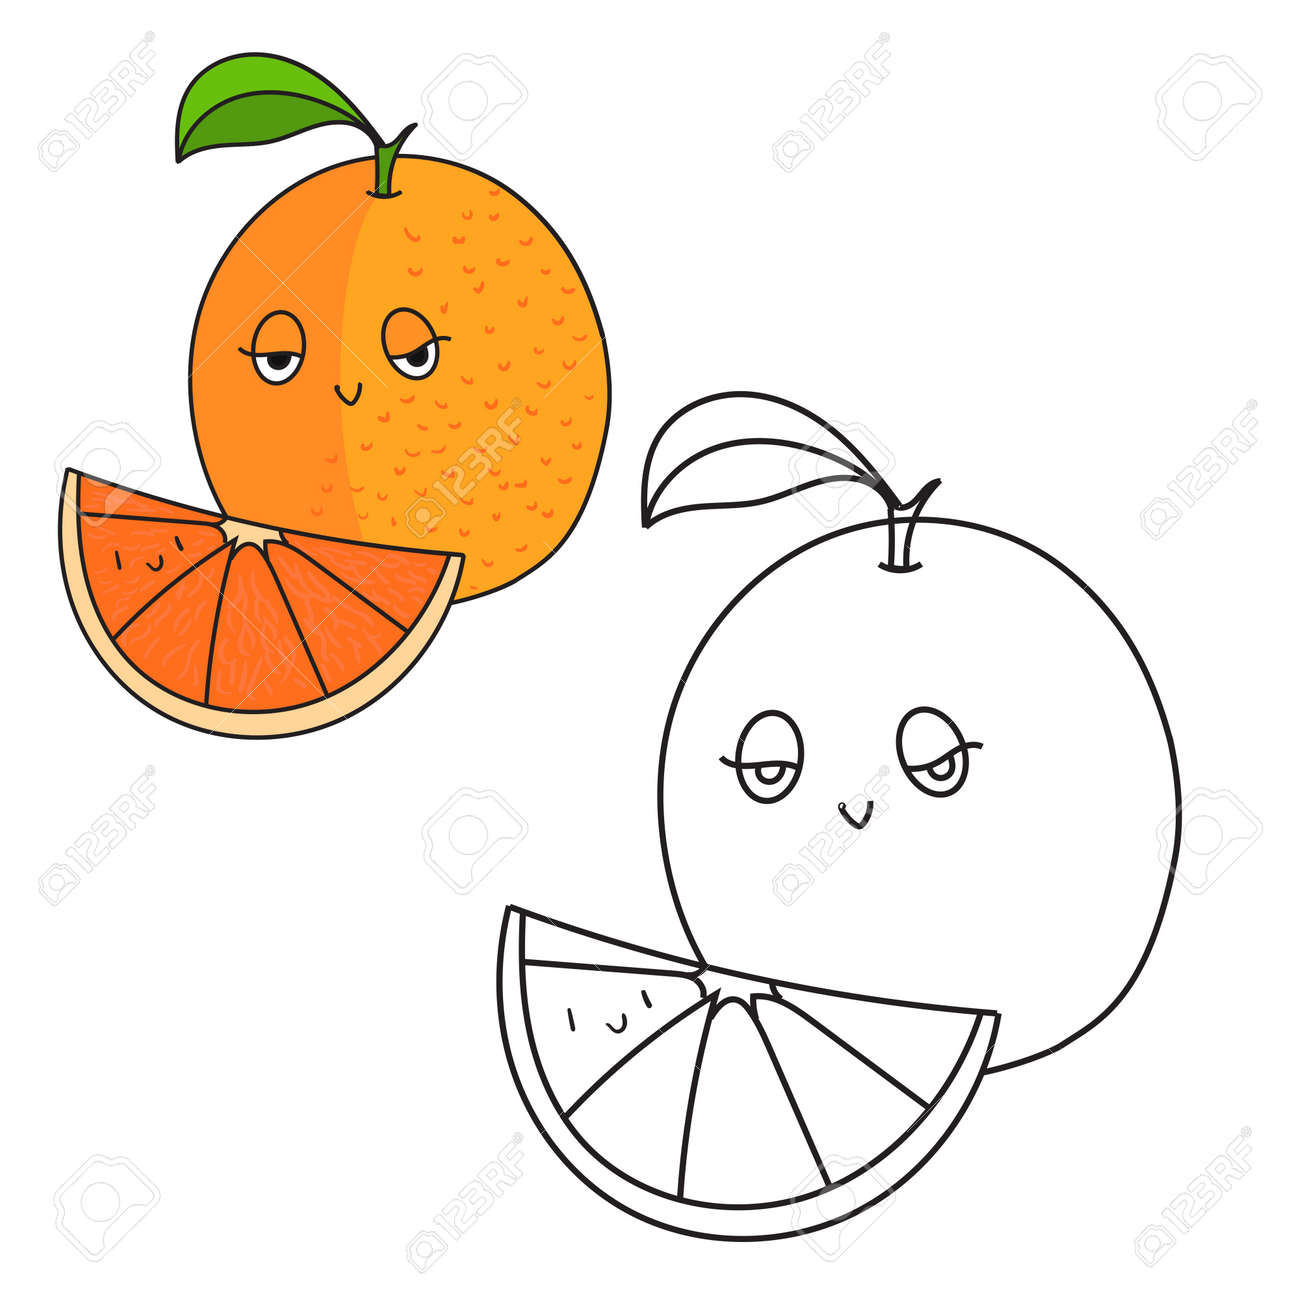 Educational Game Coloring Book Orange Fruit Cartoon Doodle Hand Drawn Vector Illustration Stock